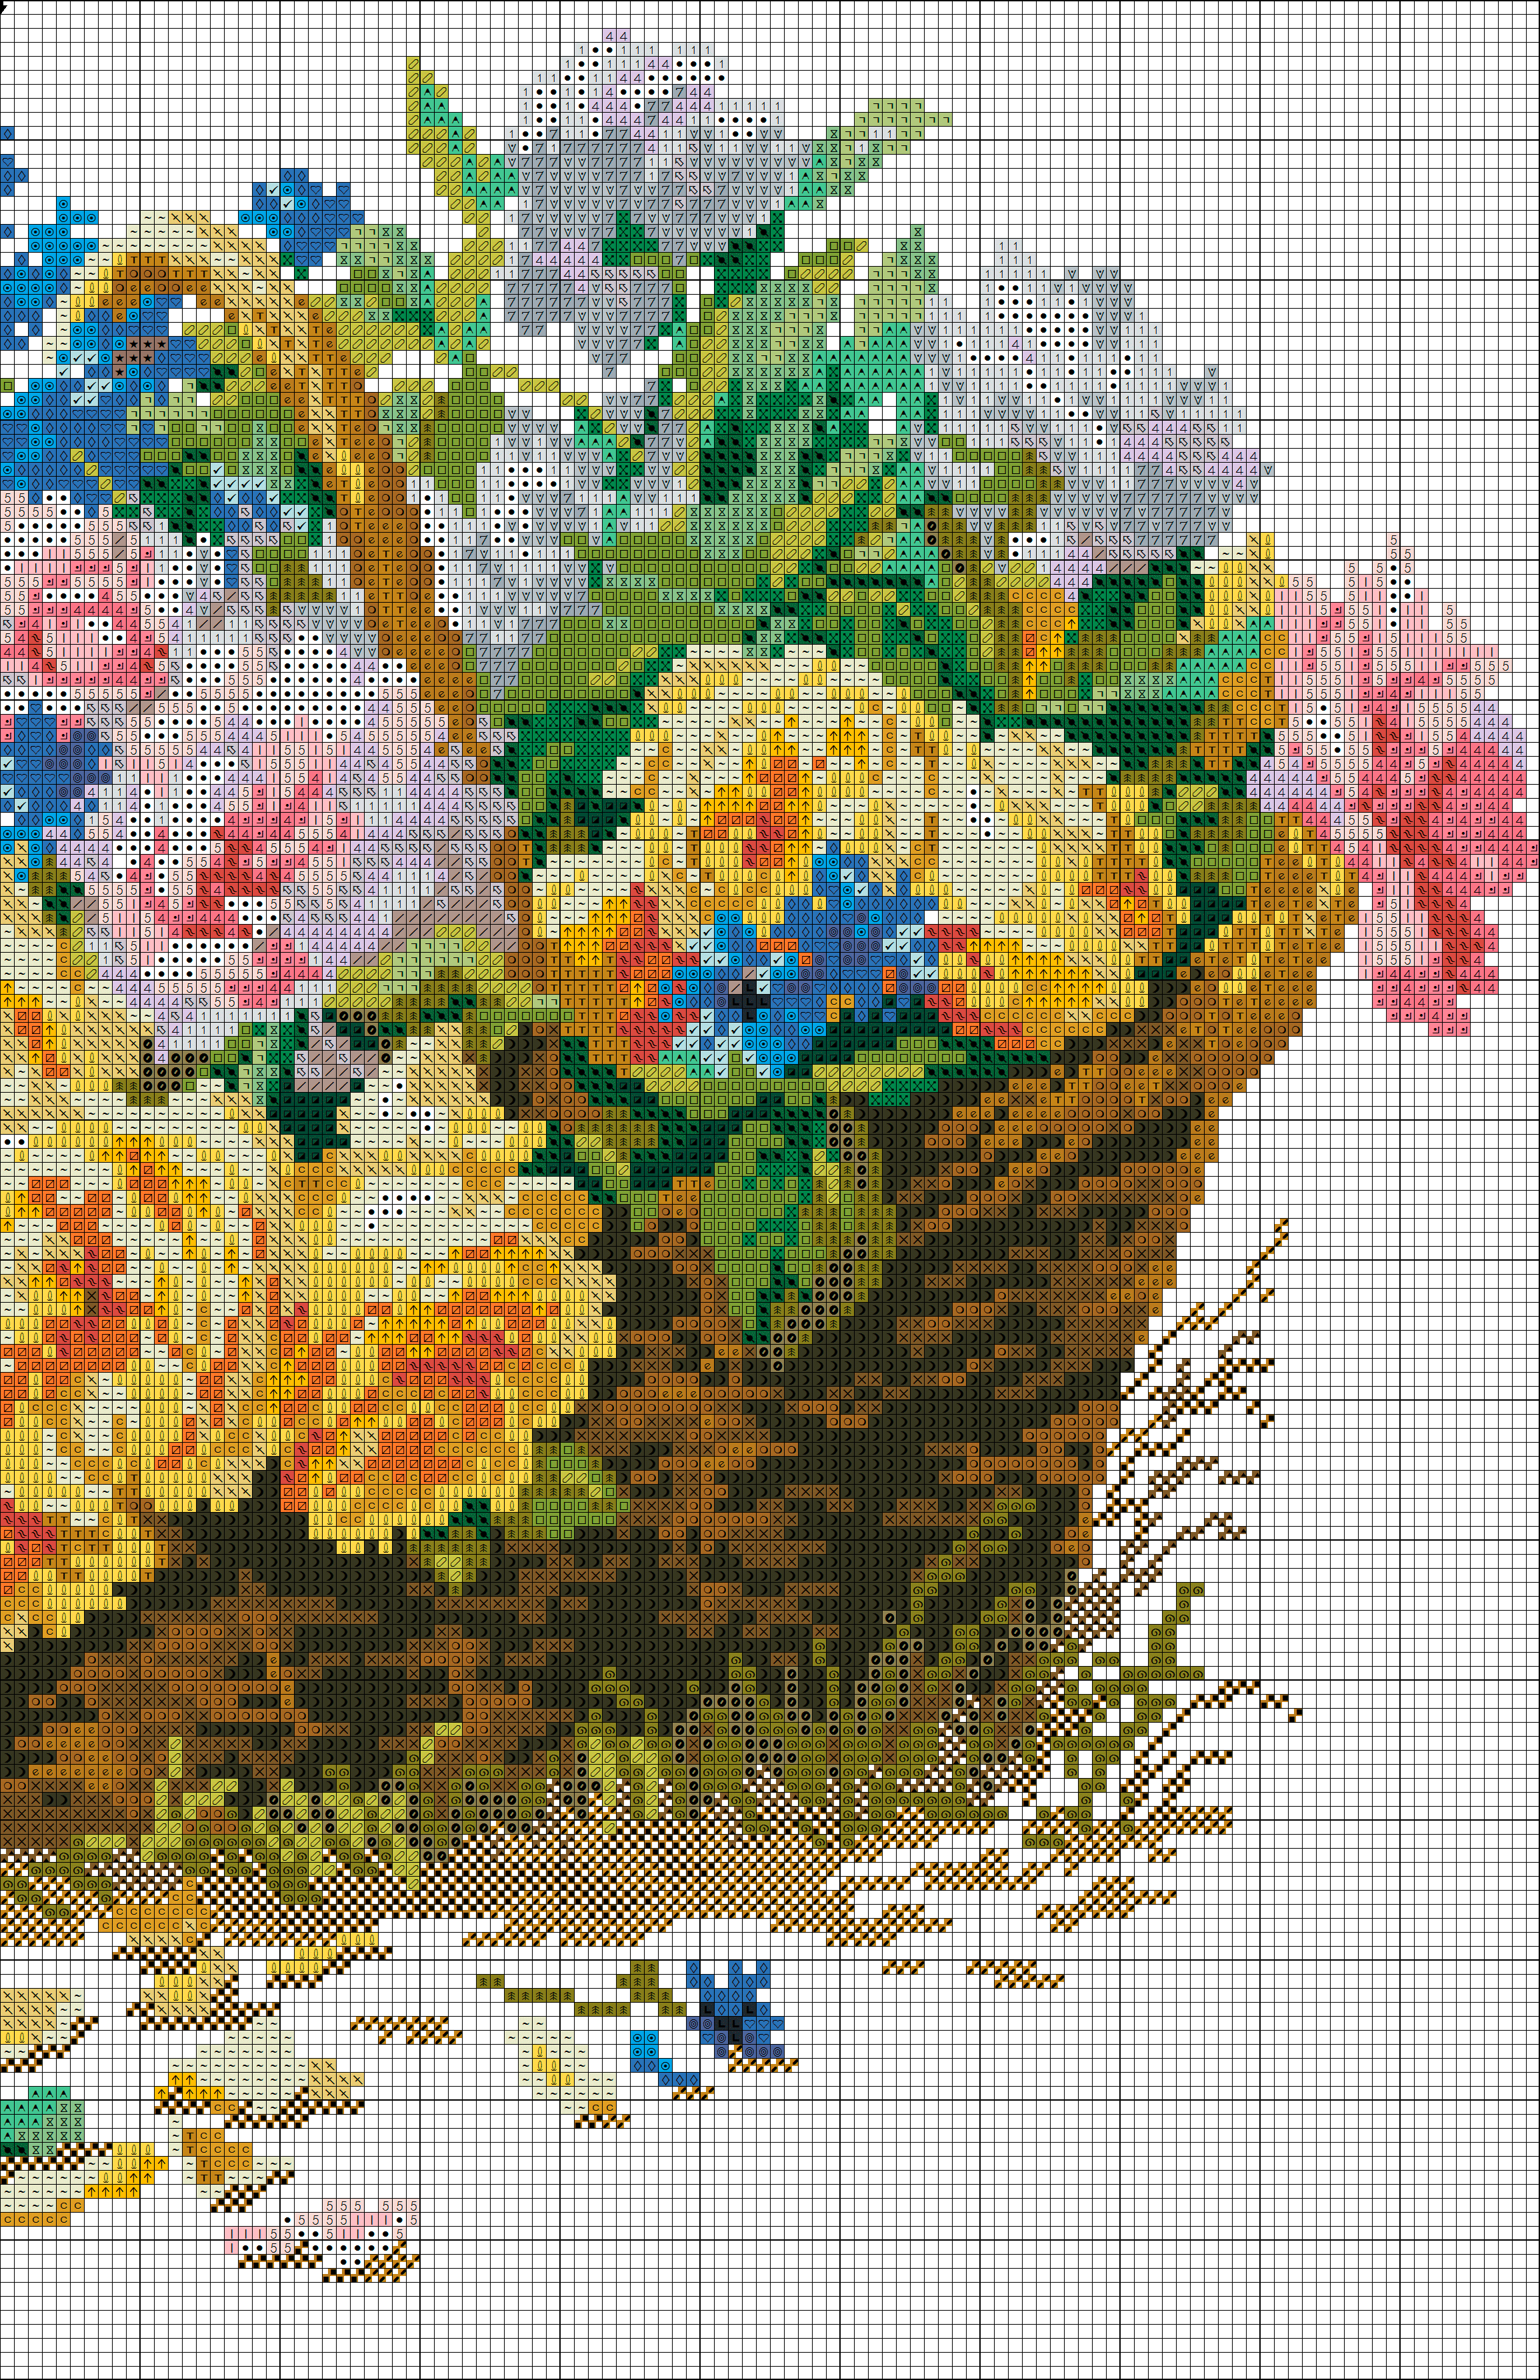 Free Cross stitch pattern Roses and Cornflowers | DIY 100 ...